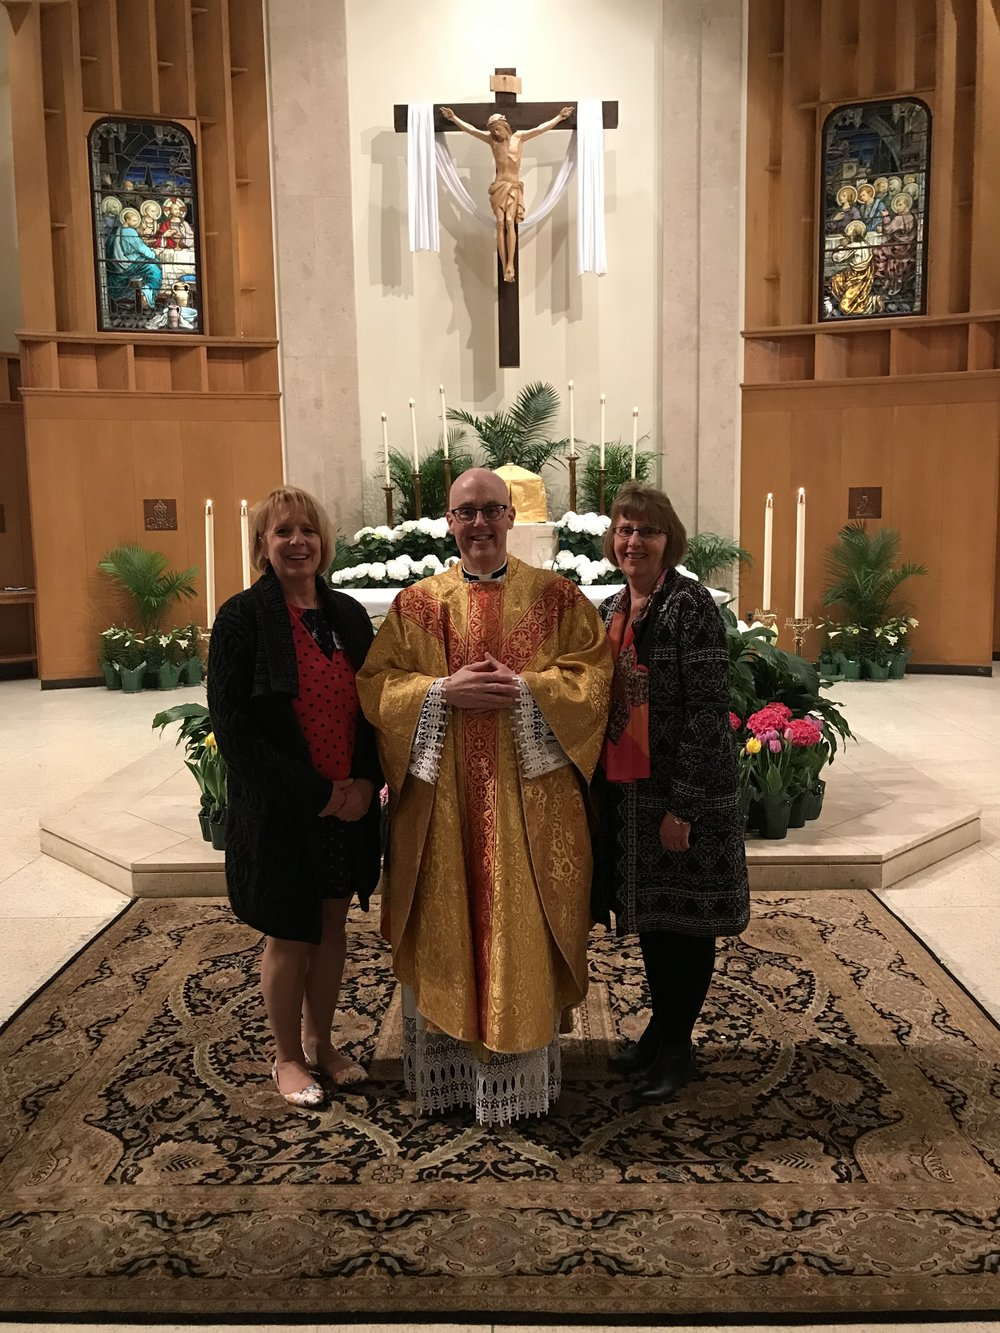 Susan Elizabeth Ann Seton Healey (pictured on left) was received into the Catholic Church at the Easter Vigil. She is pictured with her brother-in-law, Fr. Healey and her sister-in-law, Janice Healey.